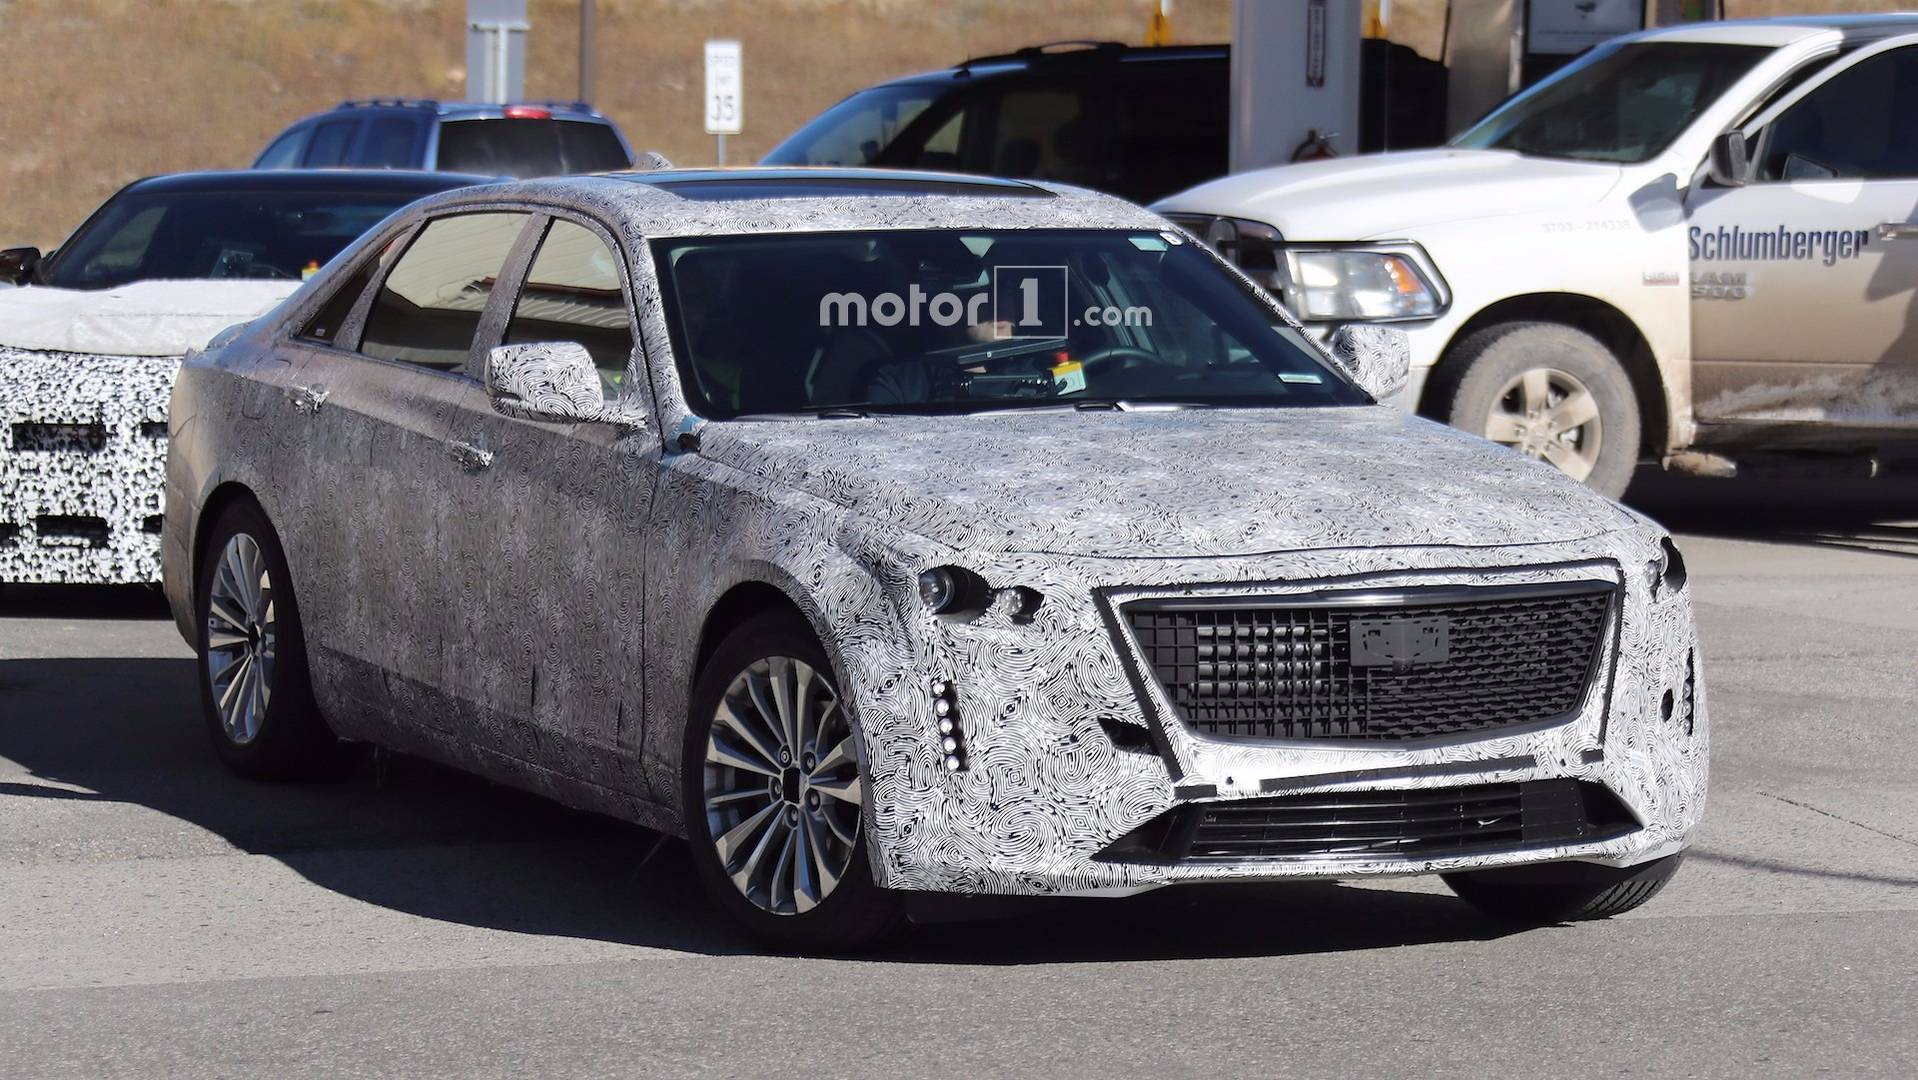 facelifted cadillac ct6 spied with escala design cues. Black Bedroom Furniture Sets. Home Design Ideas